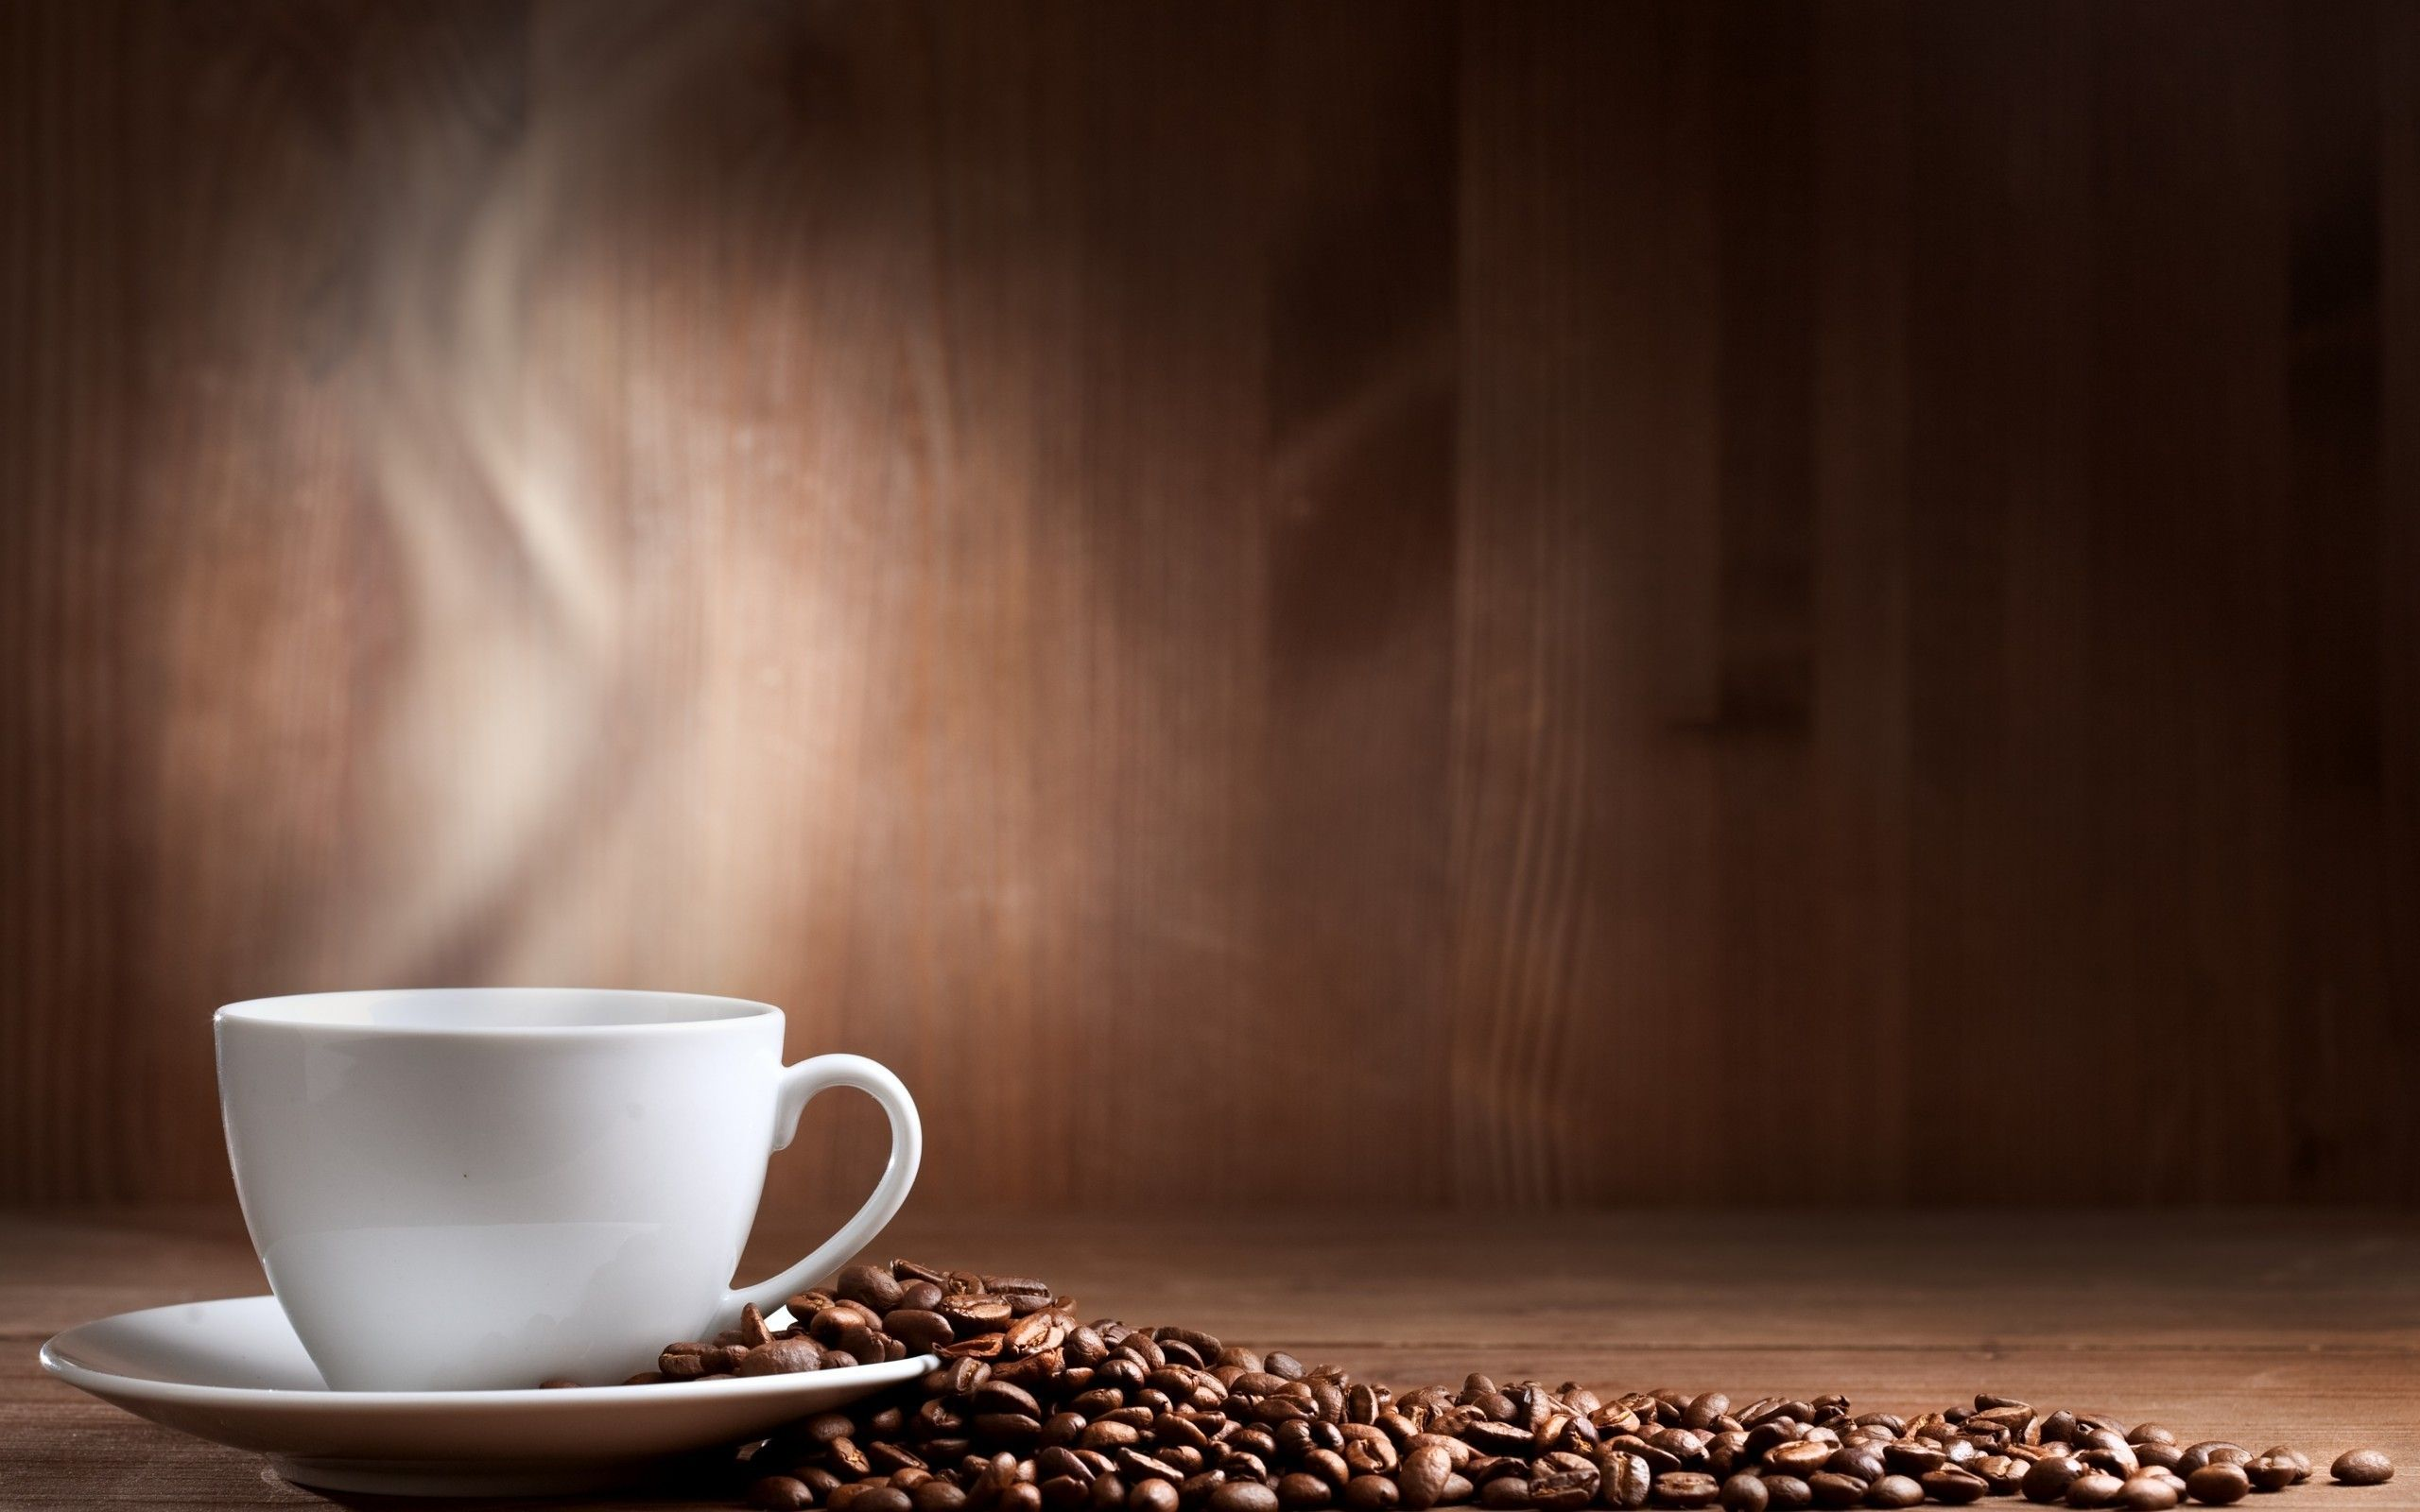 Coffee Background Wallpaper For Desktop And Mobile In High